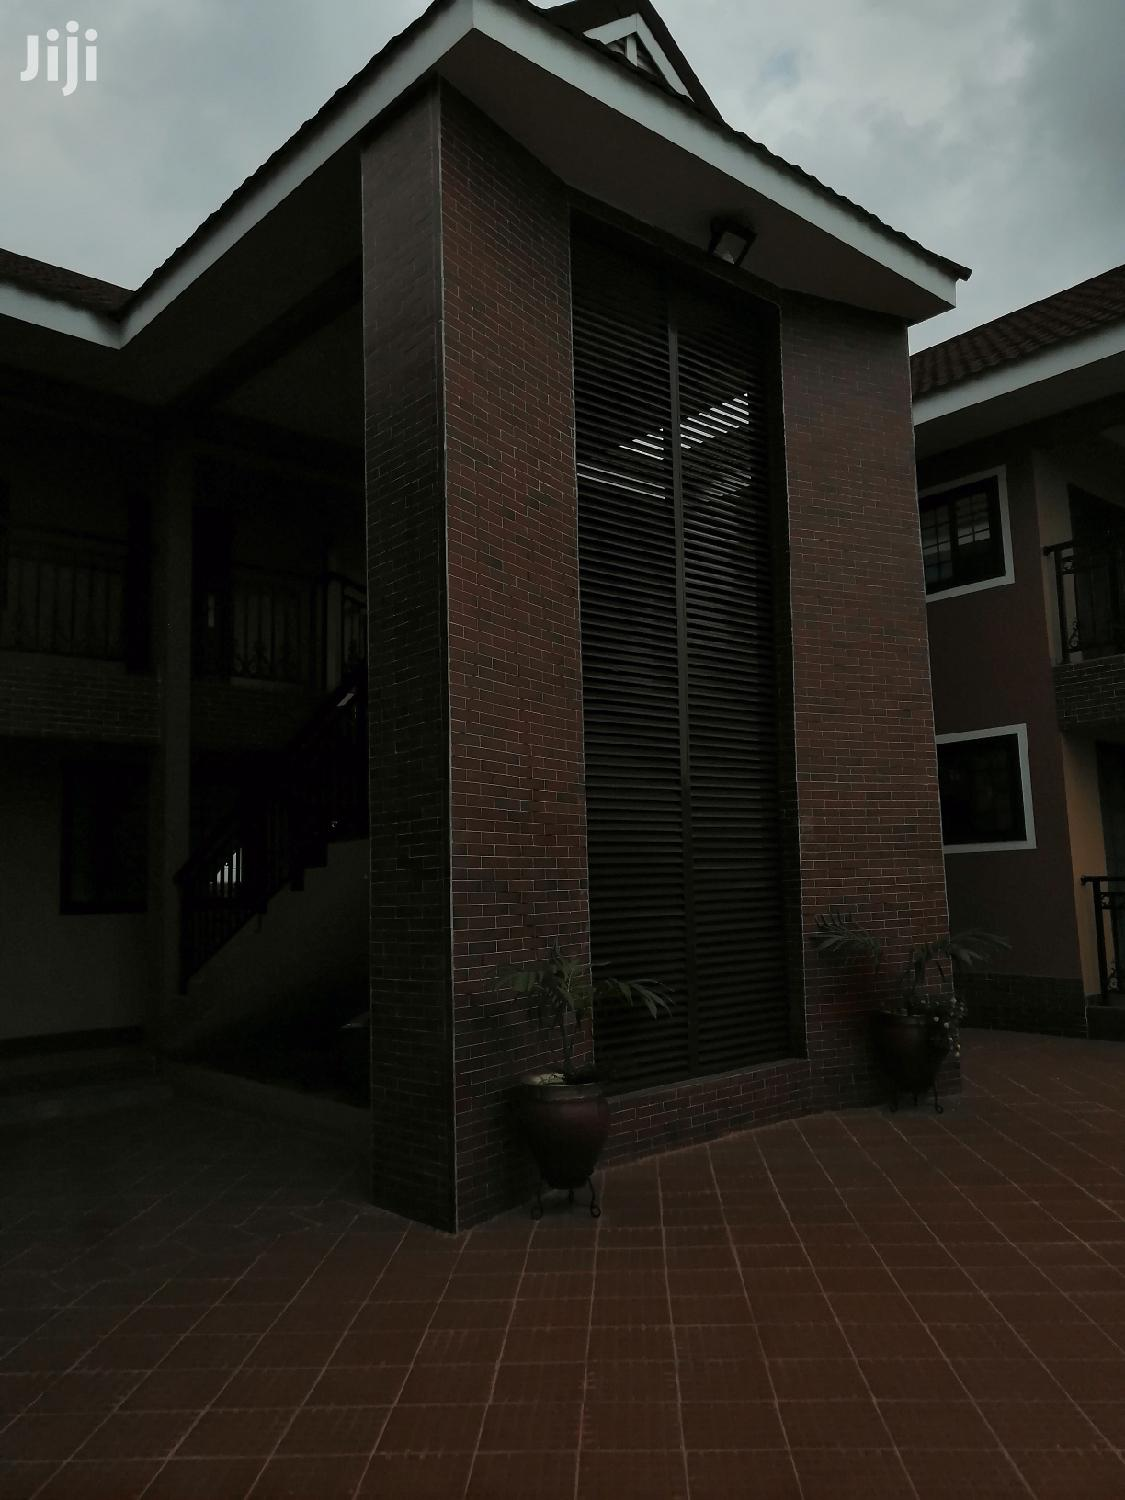 2 Bedroom Apartments For Rent At Tema Golf City